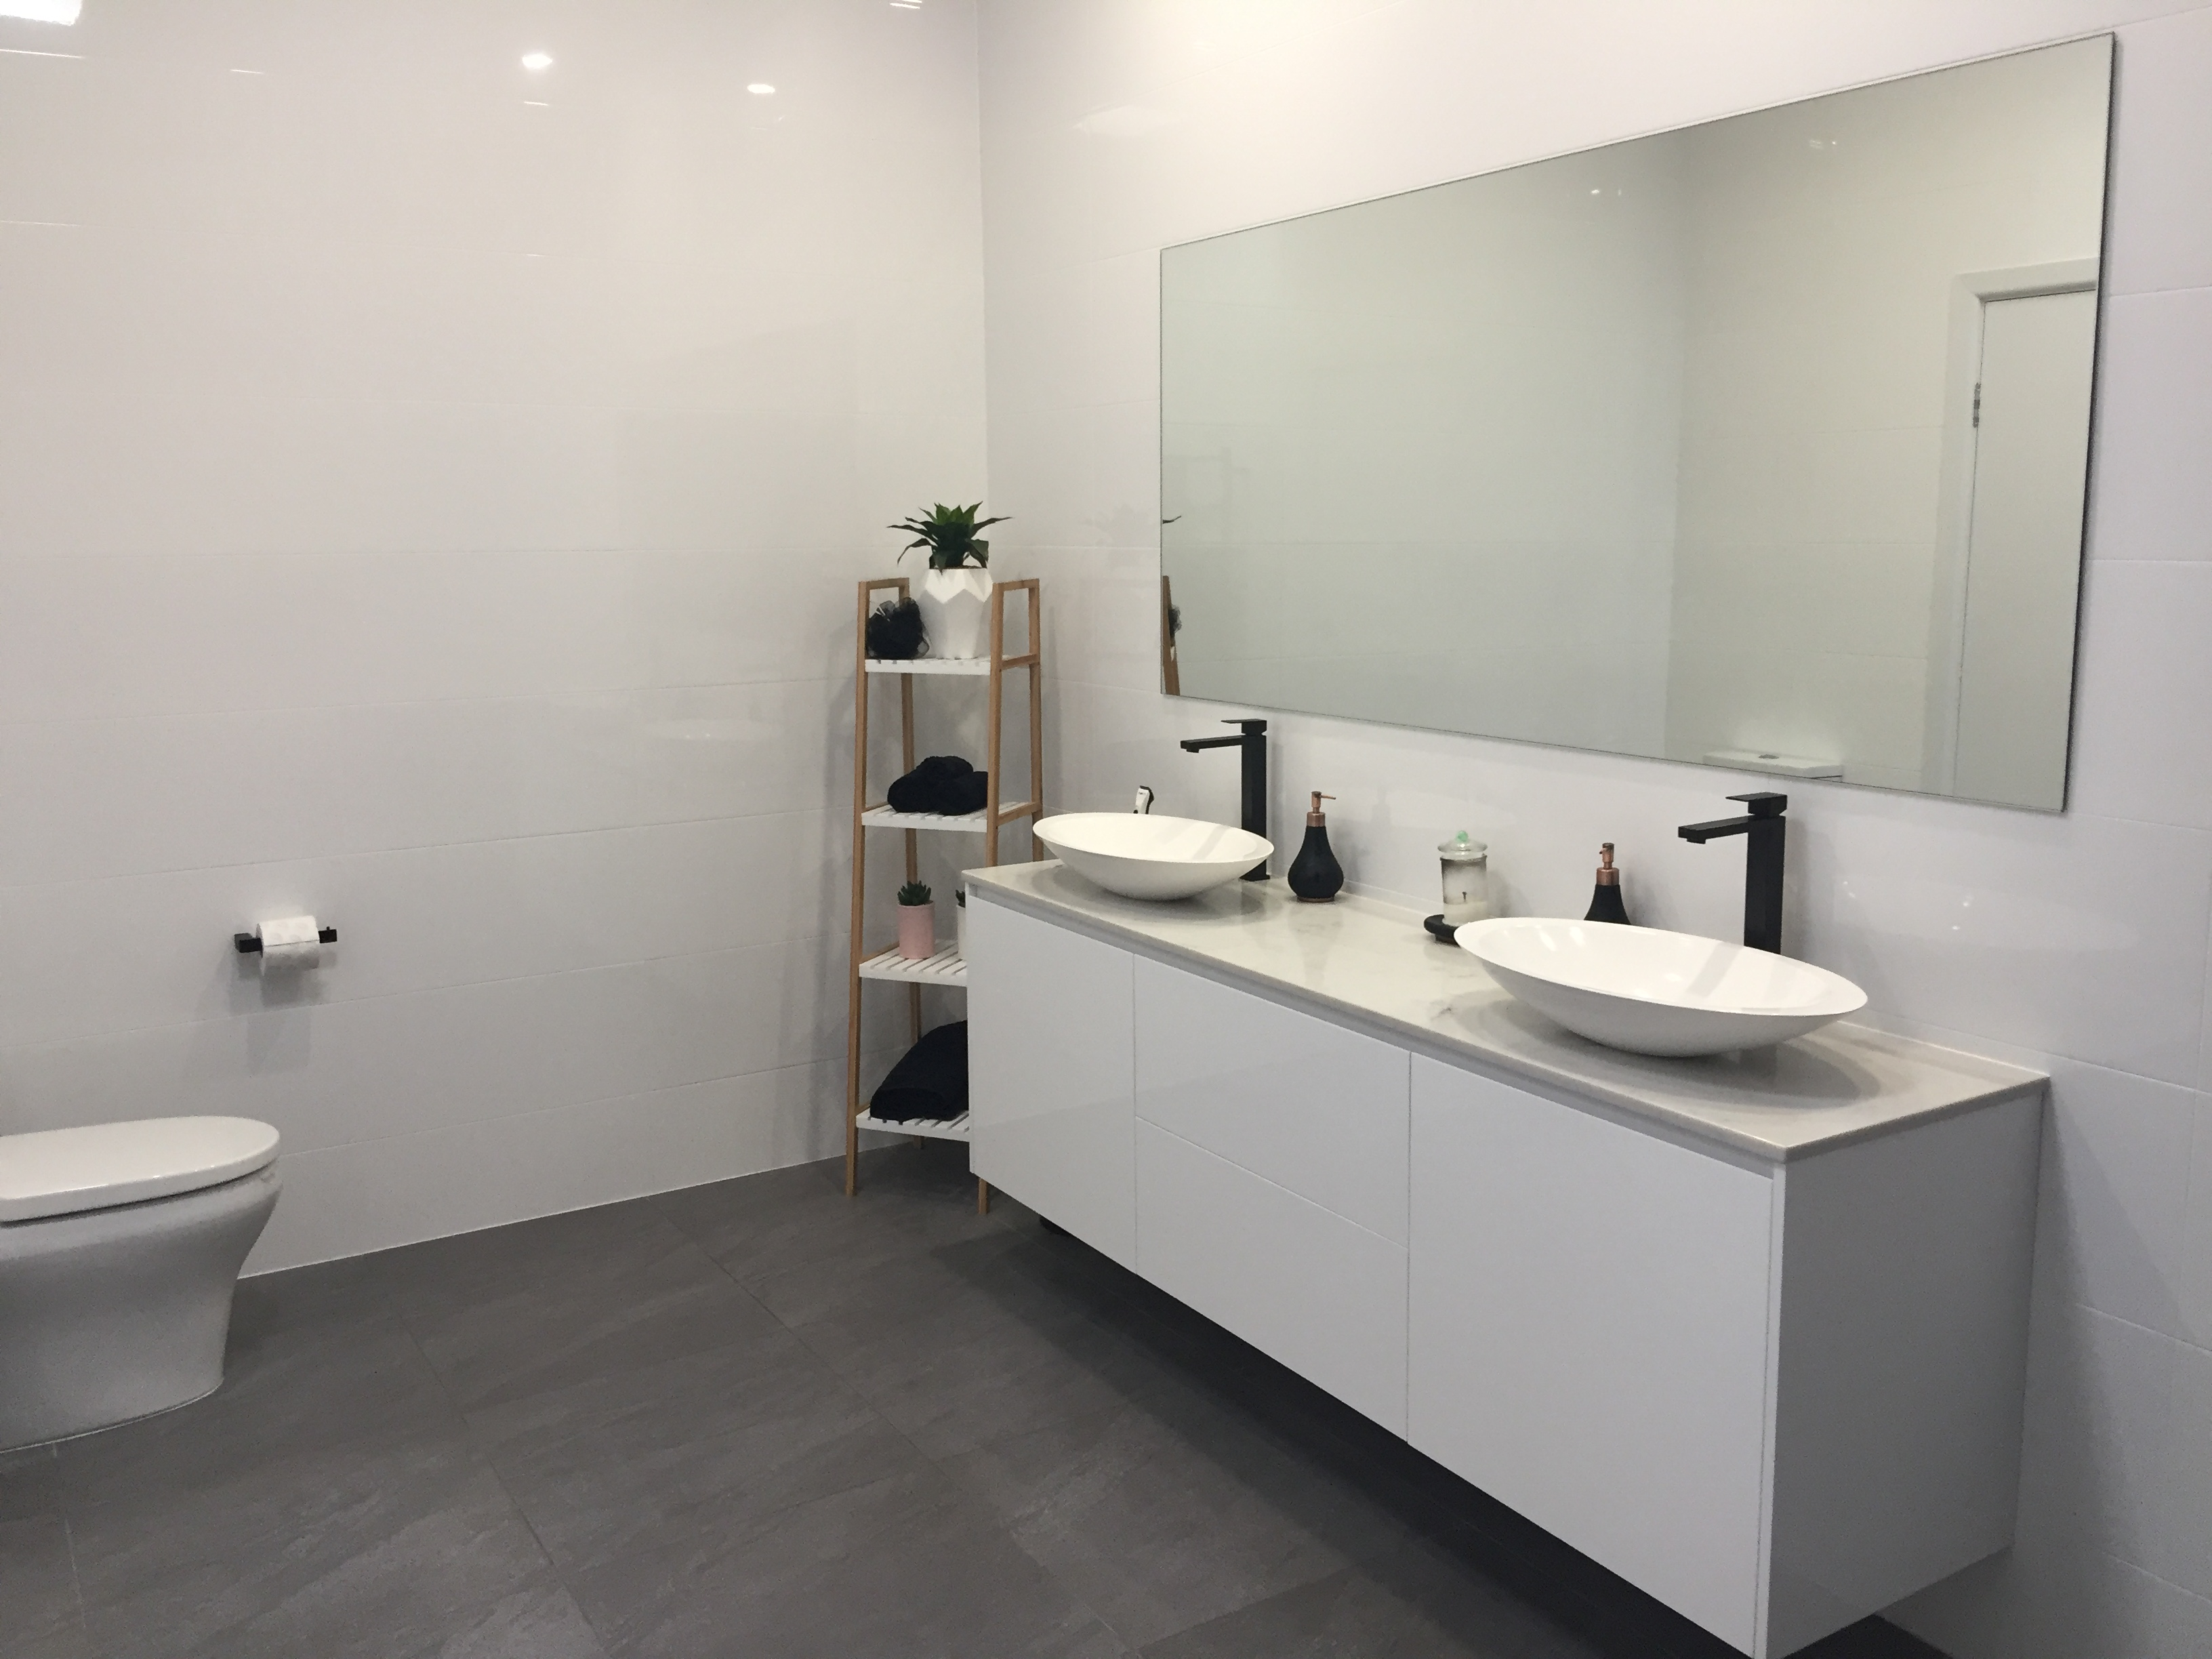 Morgan build enchanting home and bathroom renovations adelaide How long does a bathroom renovation take